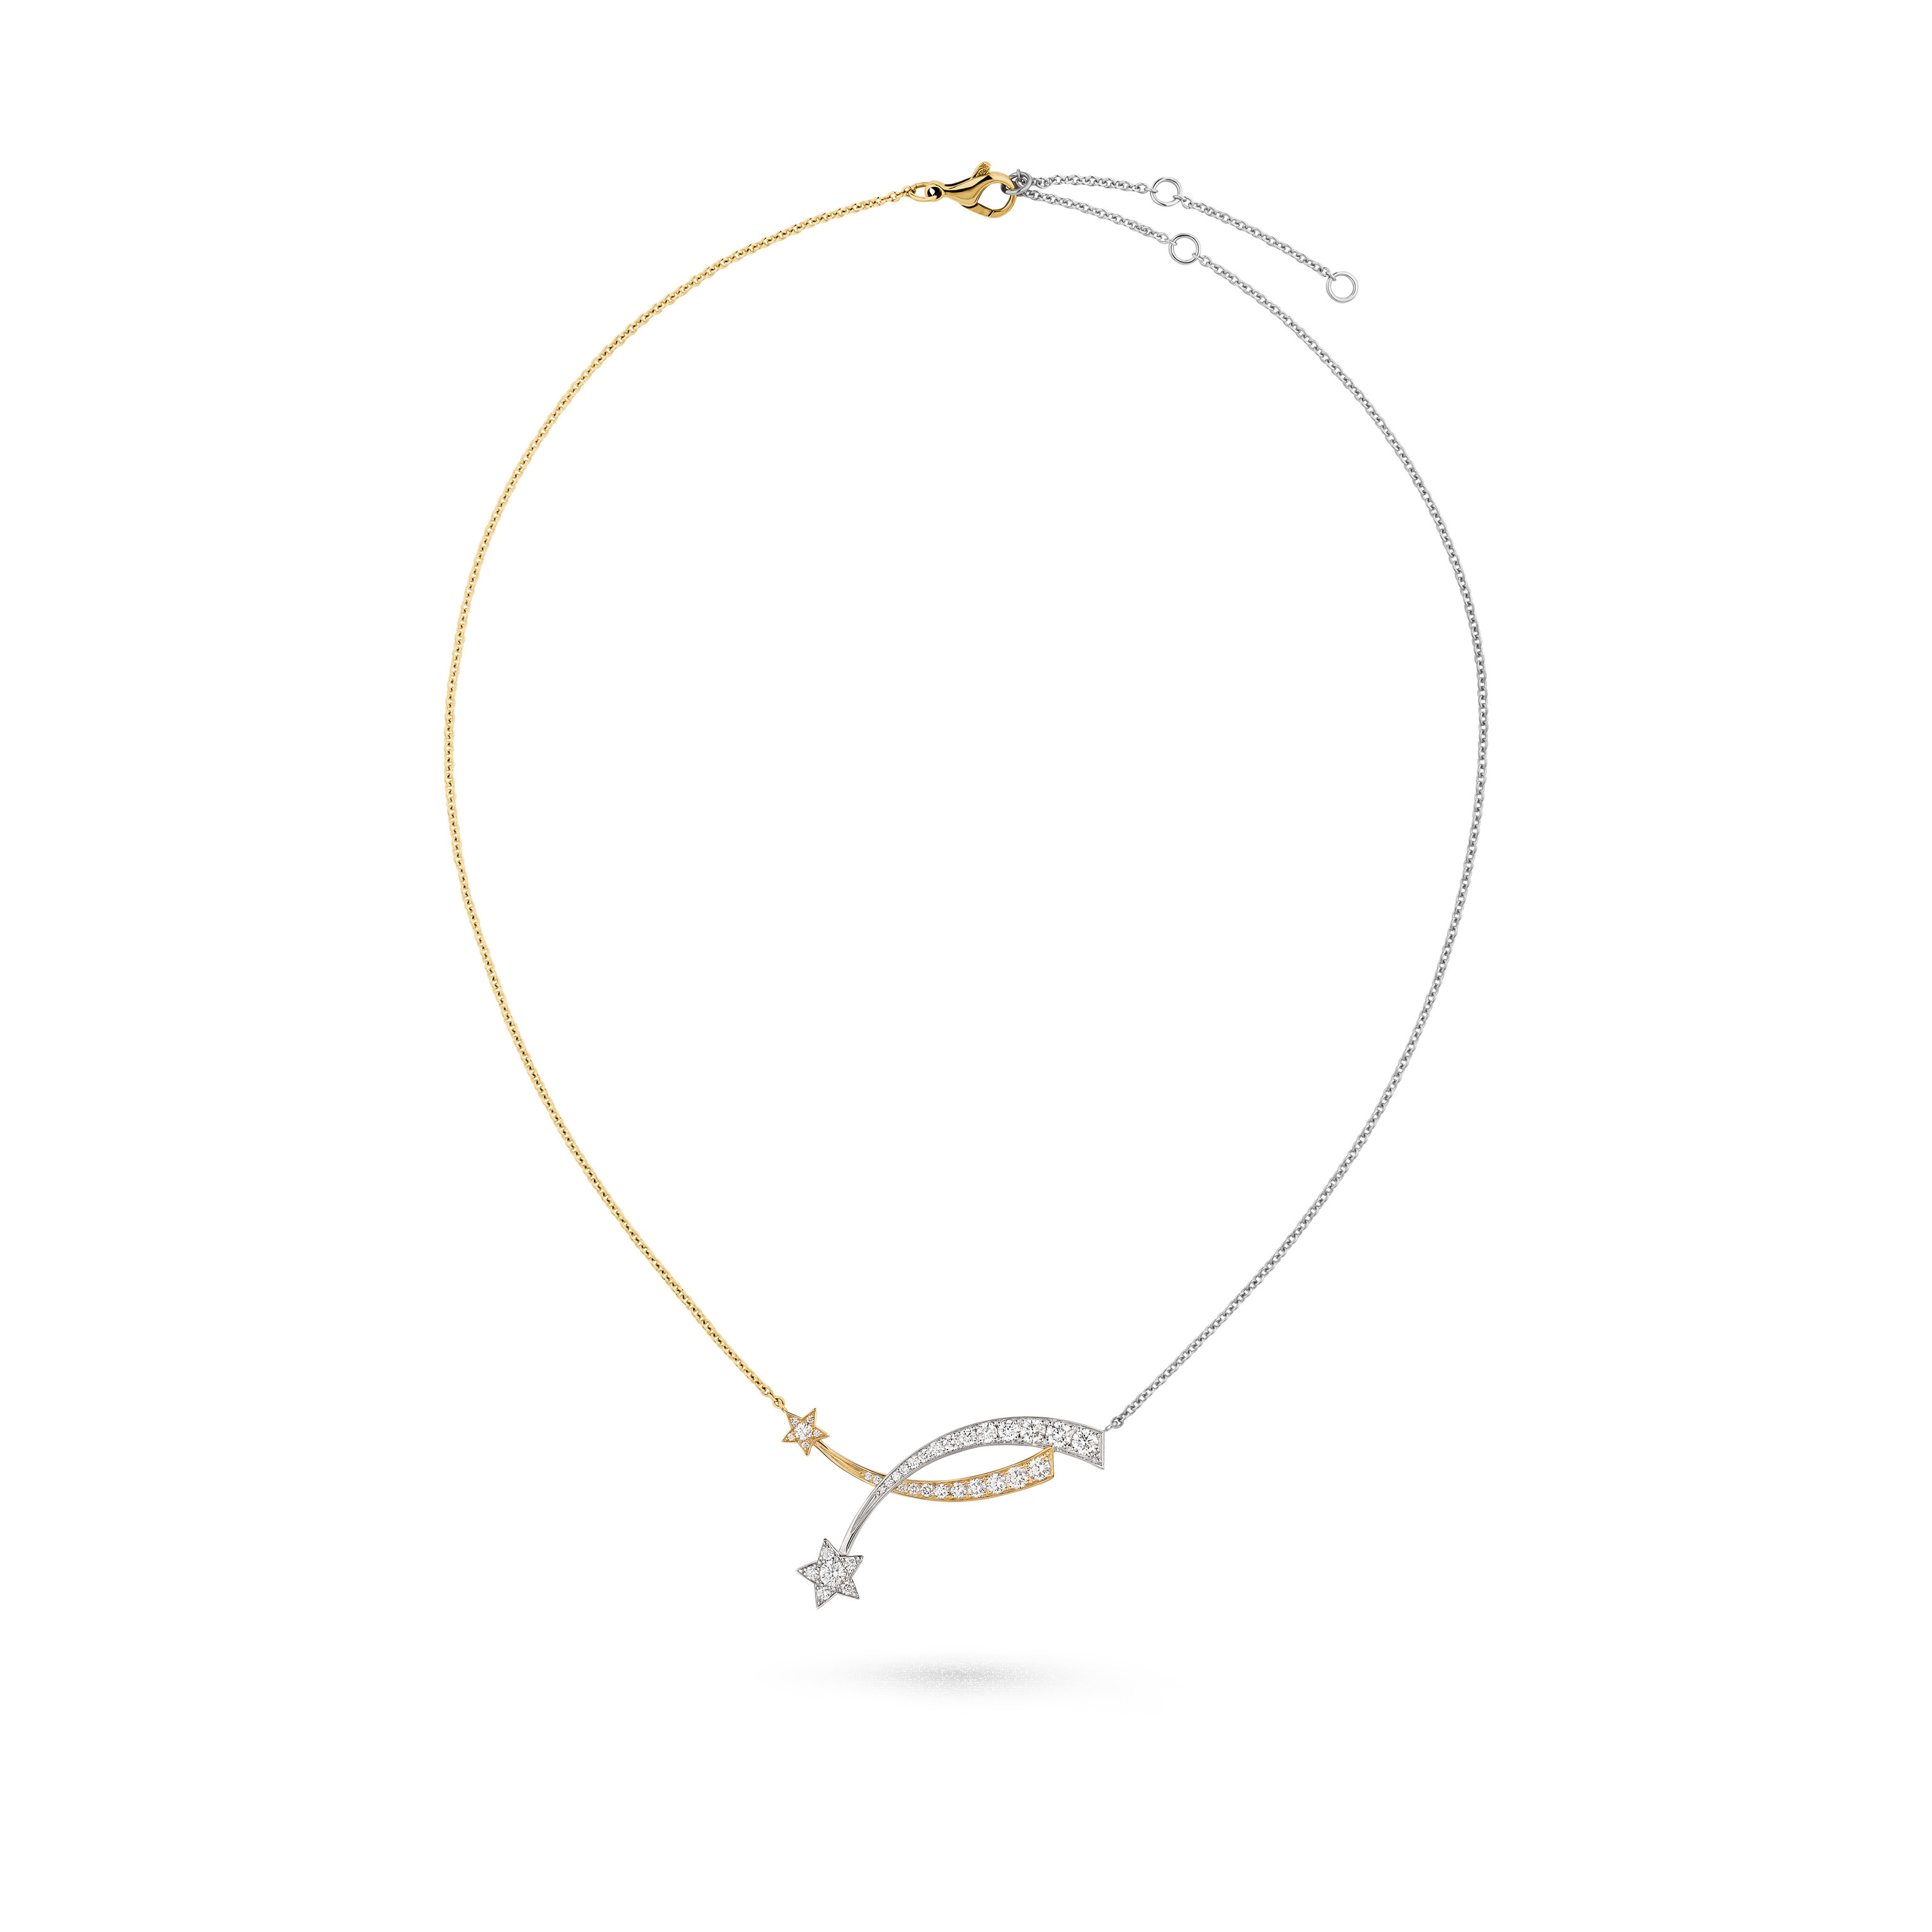 Étoile Filante necklace - 18K white and yellow gold, diamonds - CHANEL - Default view - see standard sized version